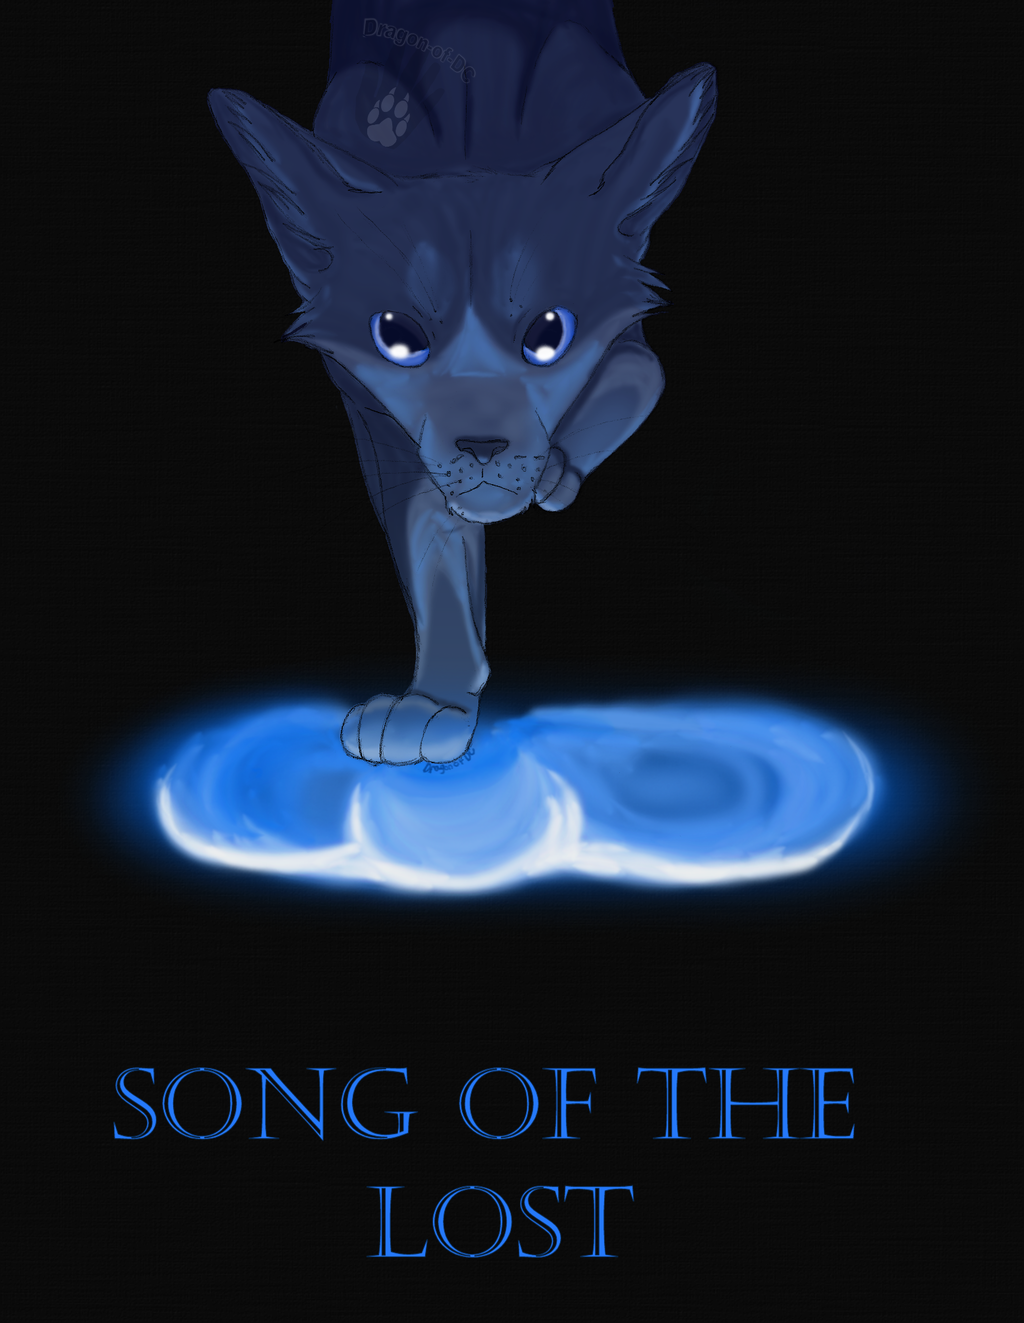 Song of the Lost